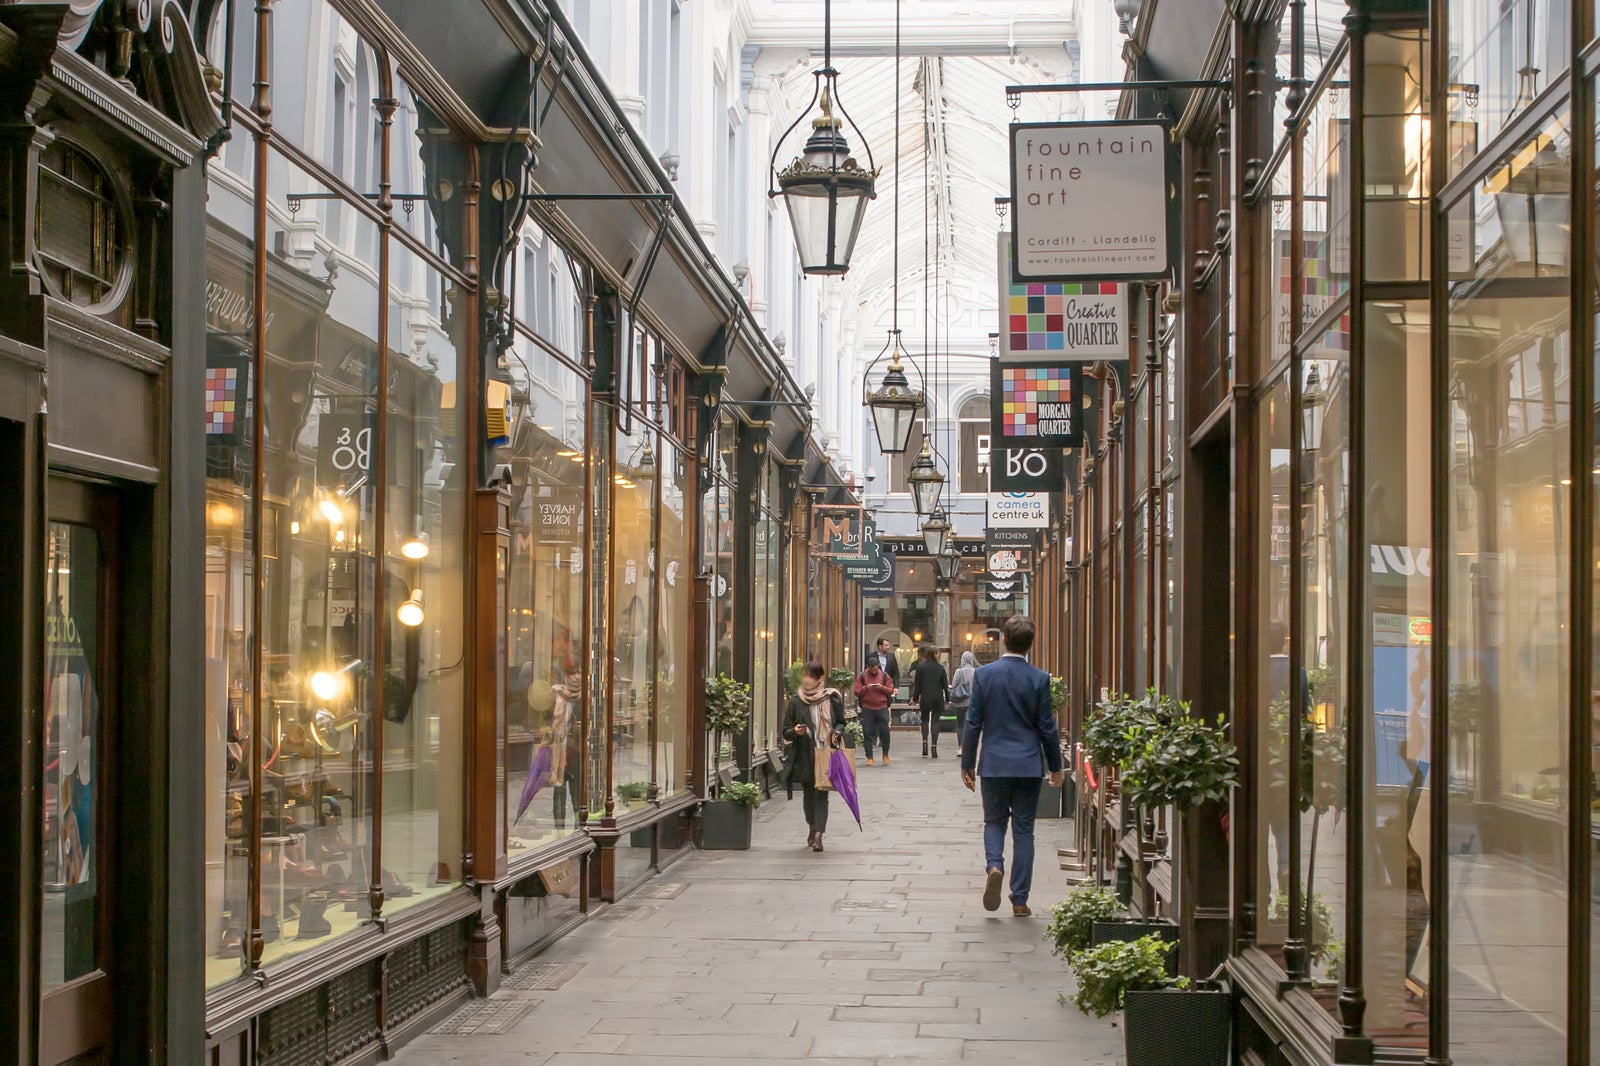 10 Best Places To Go Shopping In Cardiff Where To Shop And What To Buy In Cardiff